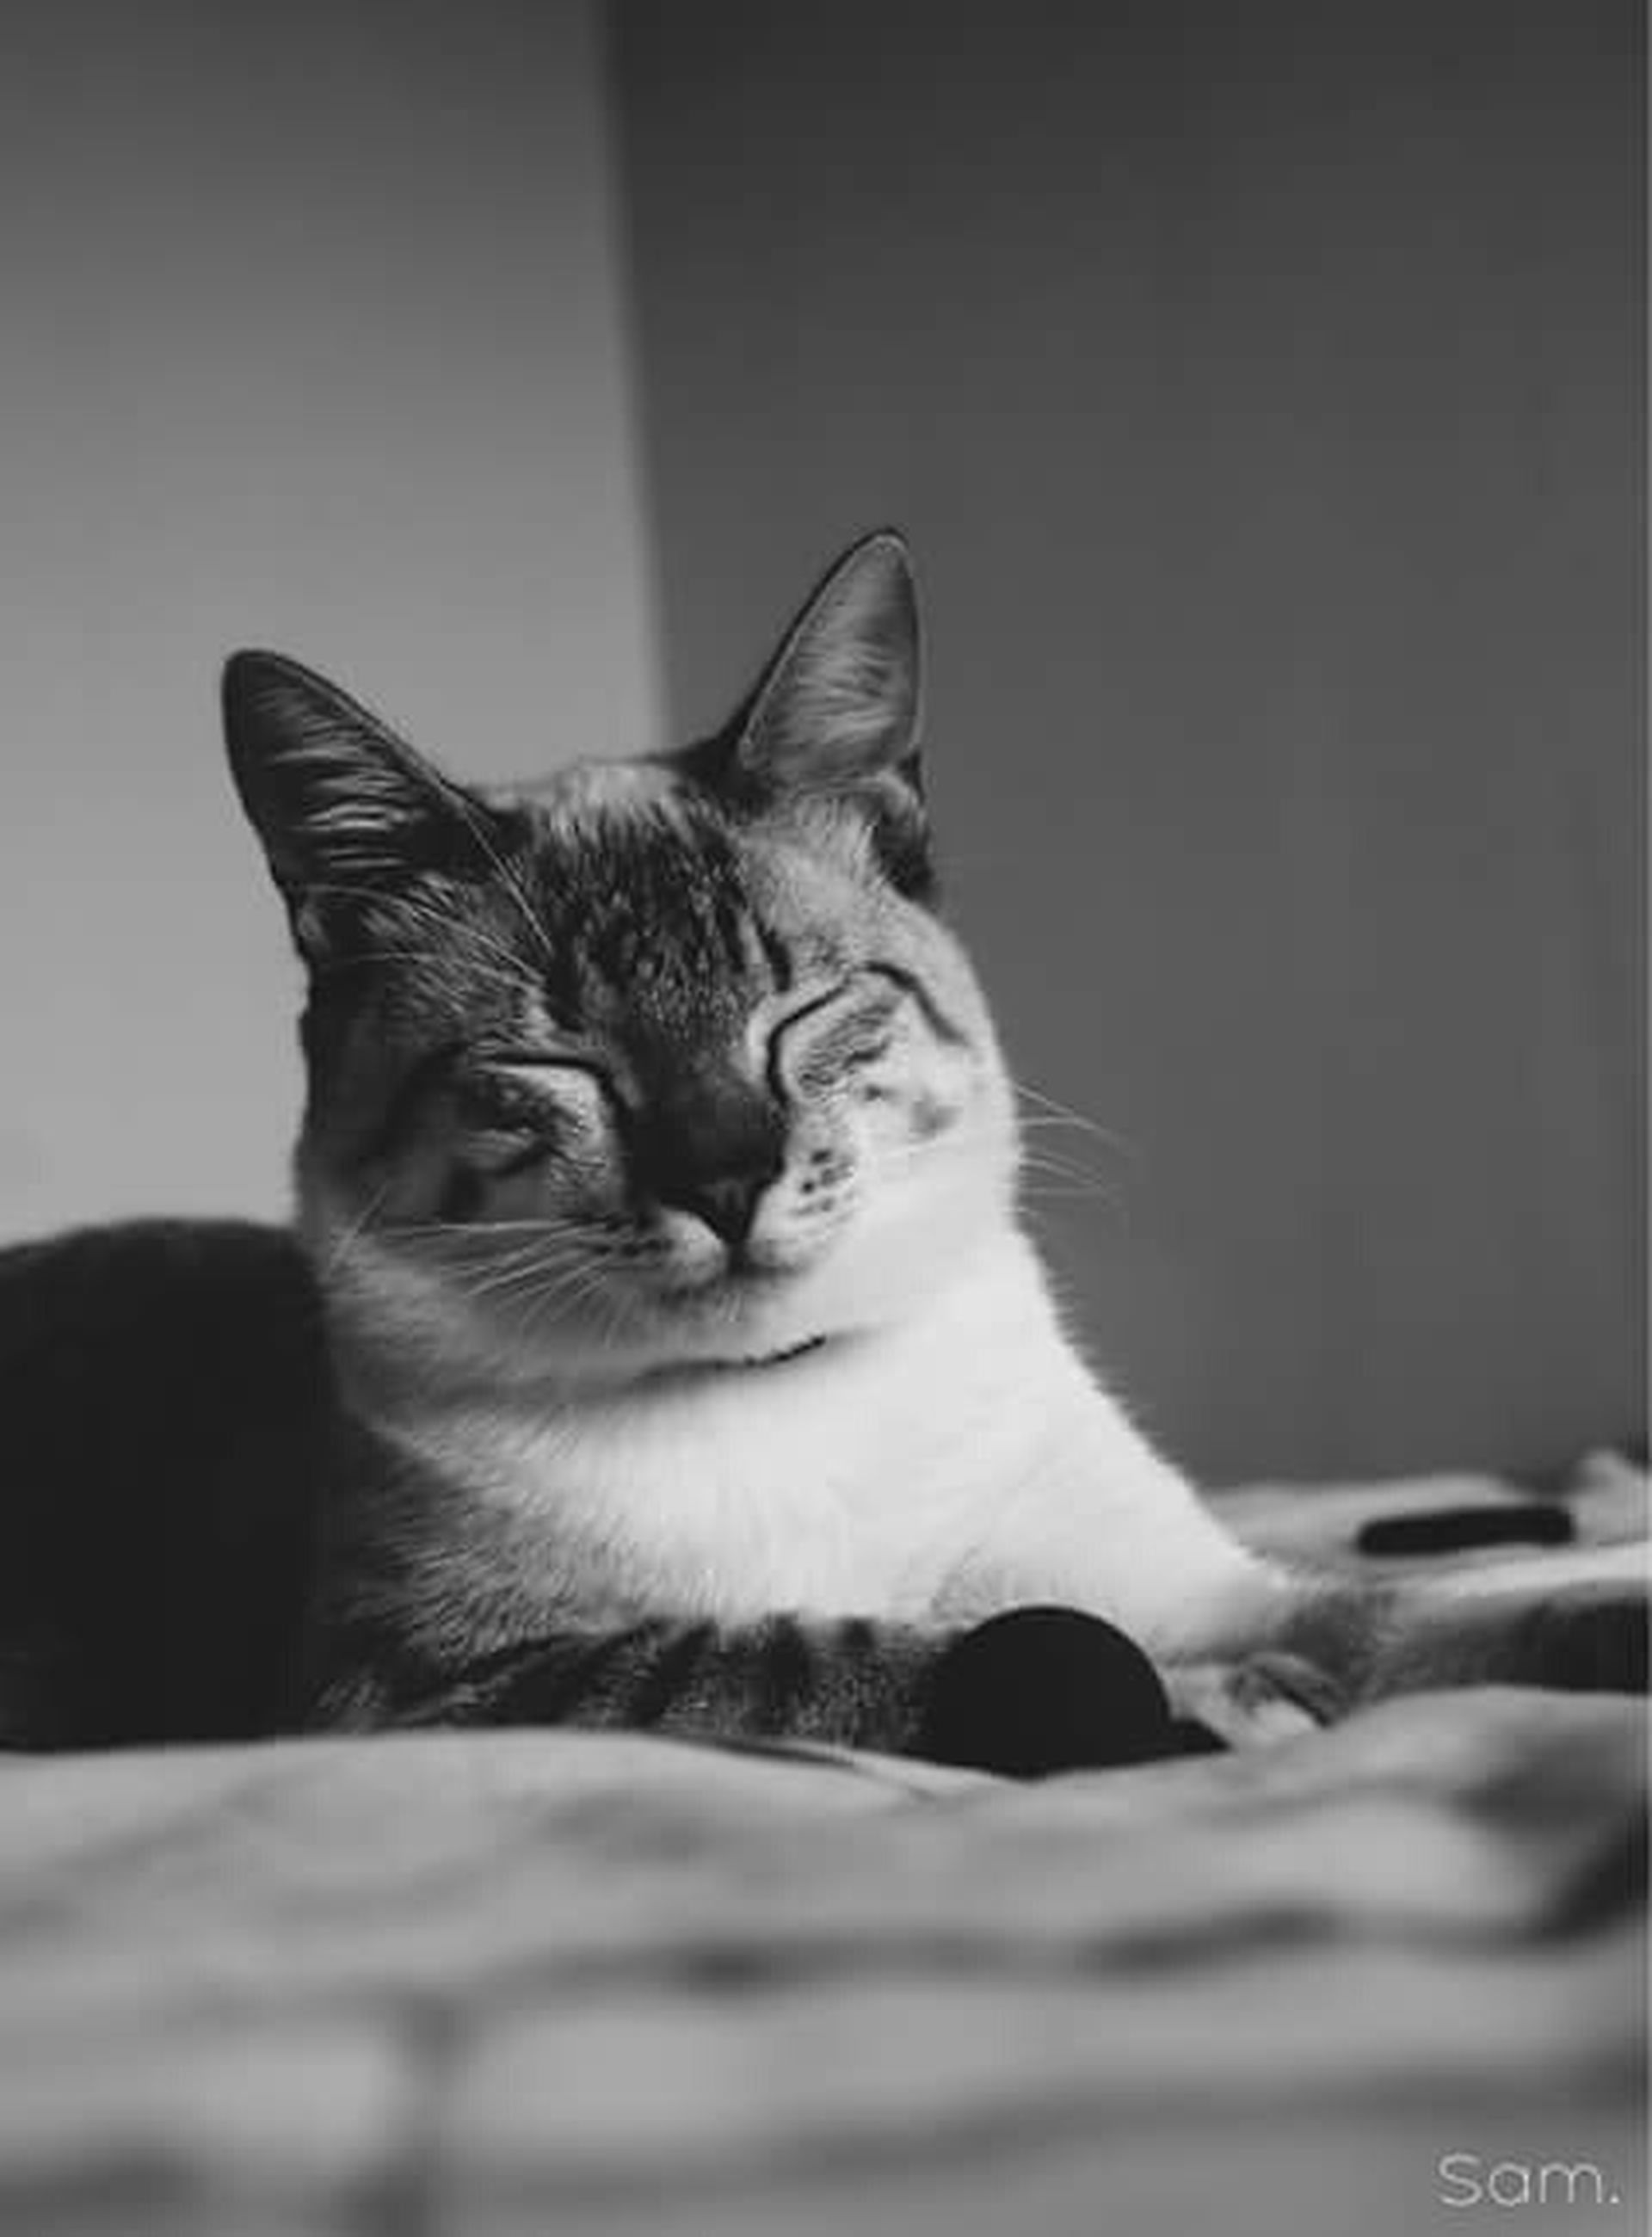 domestic cat, pets, domestic animals, cat, mammal, one animal, animal themes, feline, indoors, whisker, portrait, looking at camera, relaxation, home interior, sitting, close-up, animal head, alertness, lying down